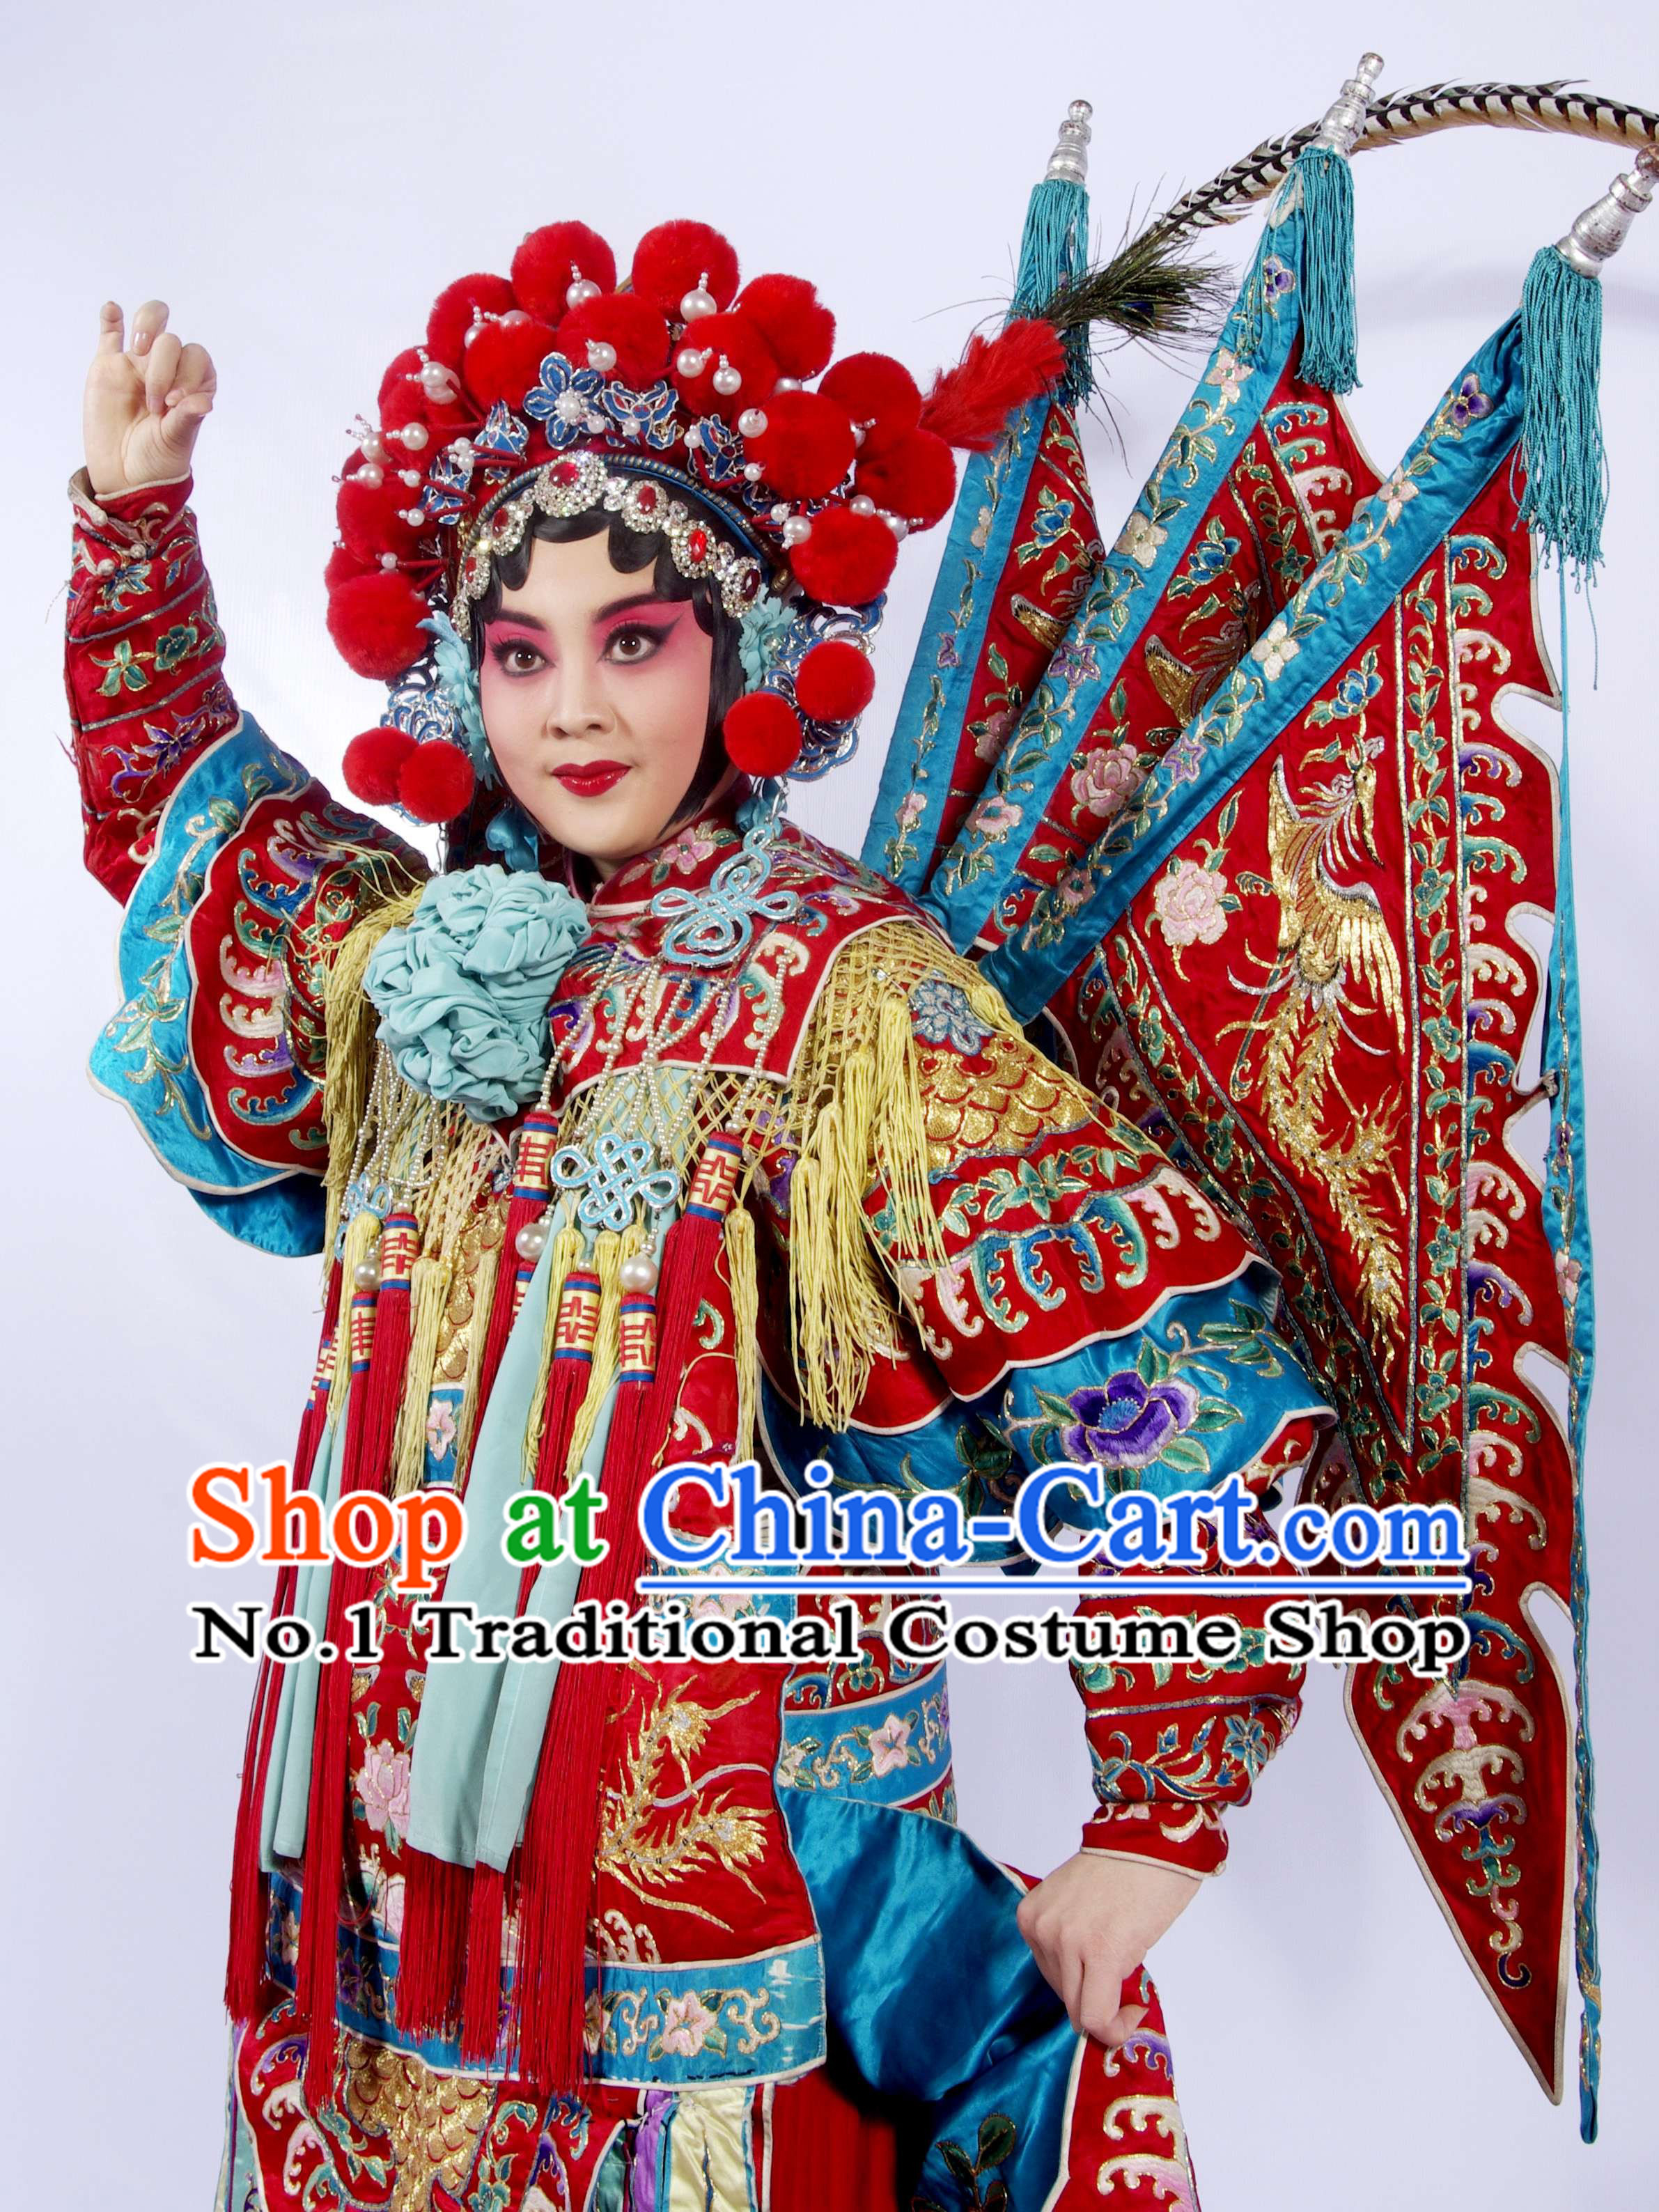 Beijing Opera China De Waterkant Liyuan Theatre Liyuan Theater Costumes